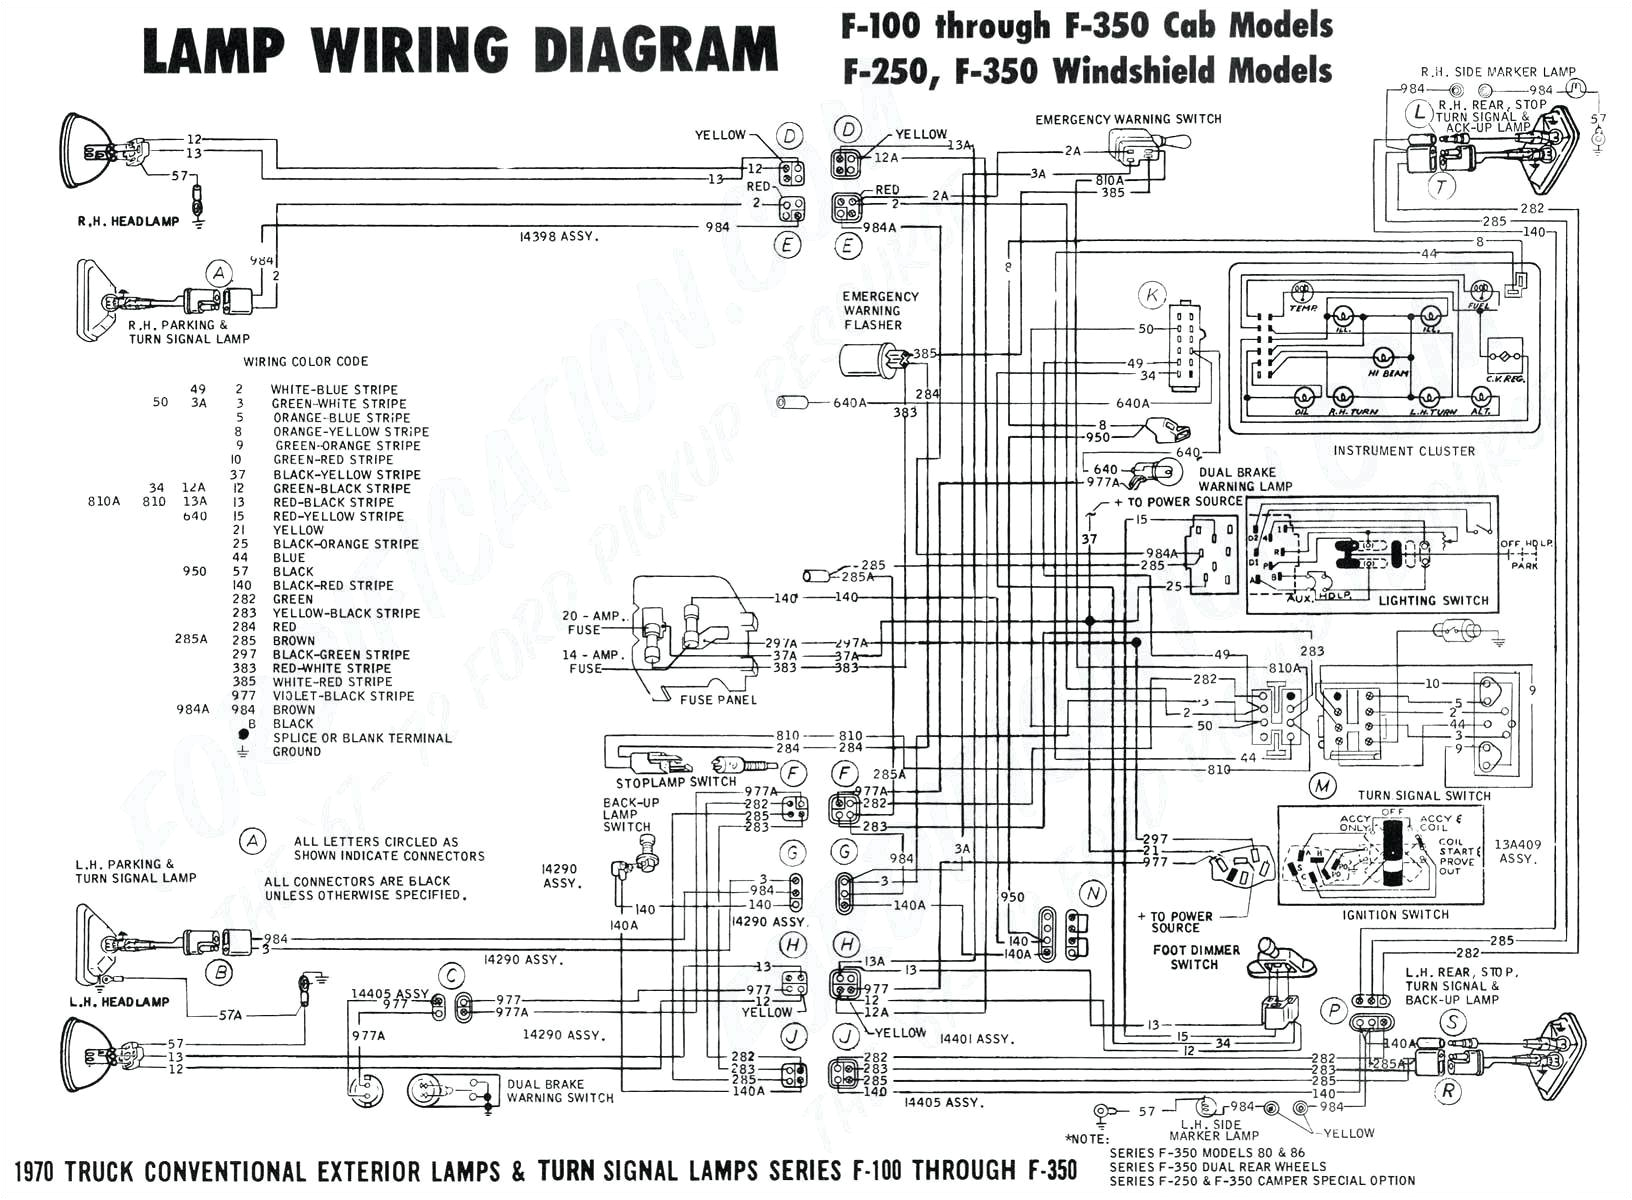 maxon wire diagram wiring diagram centre maxon 280252 wiring harness diagram